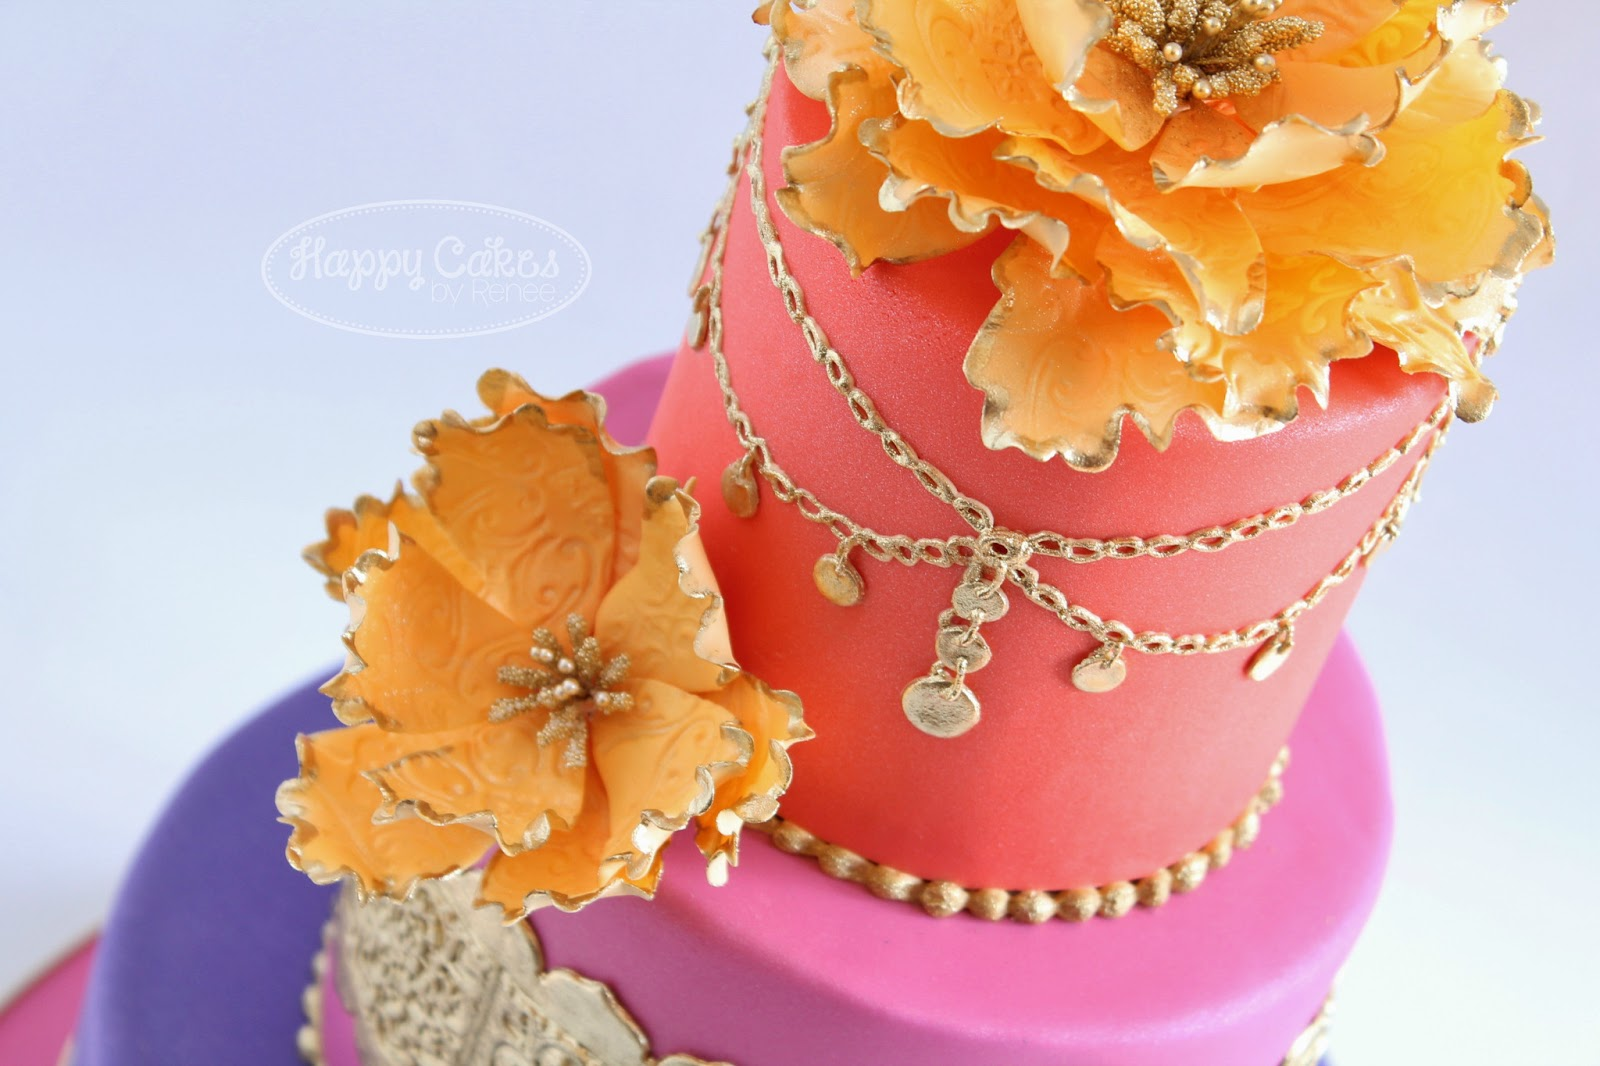 Renee Conner Cake Design